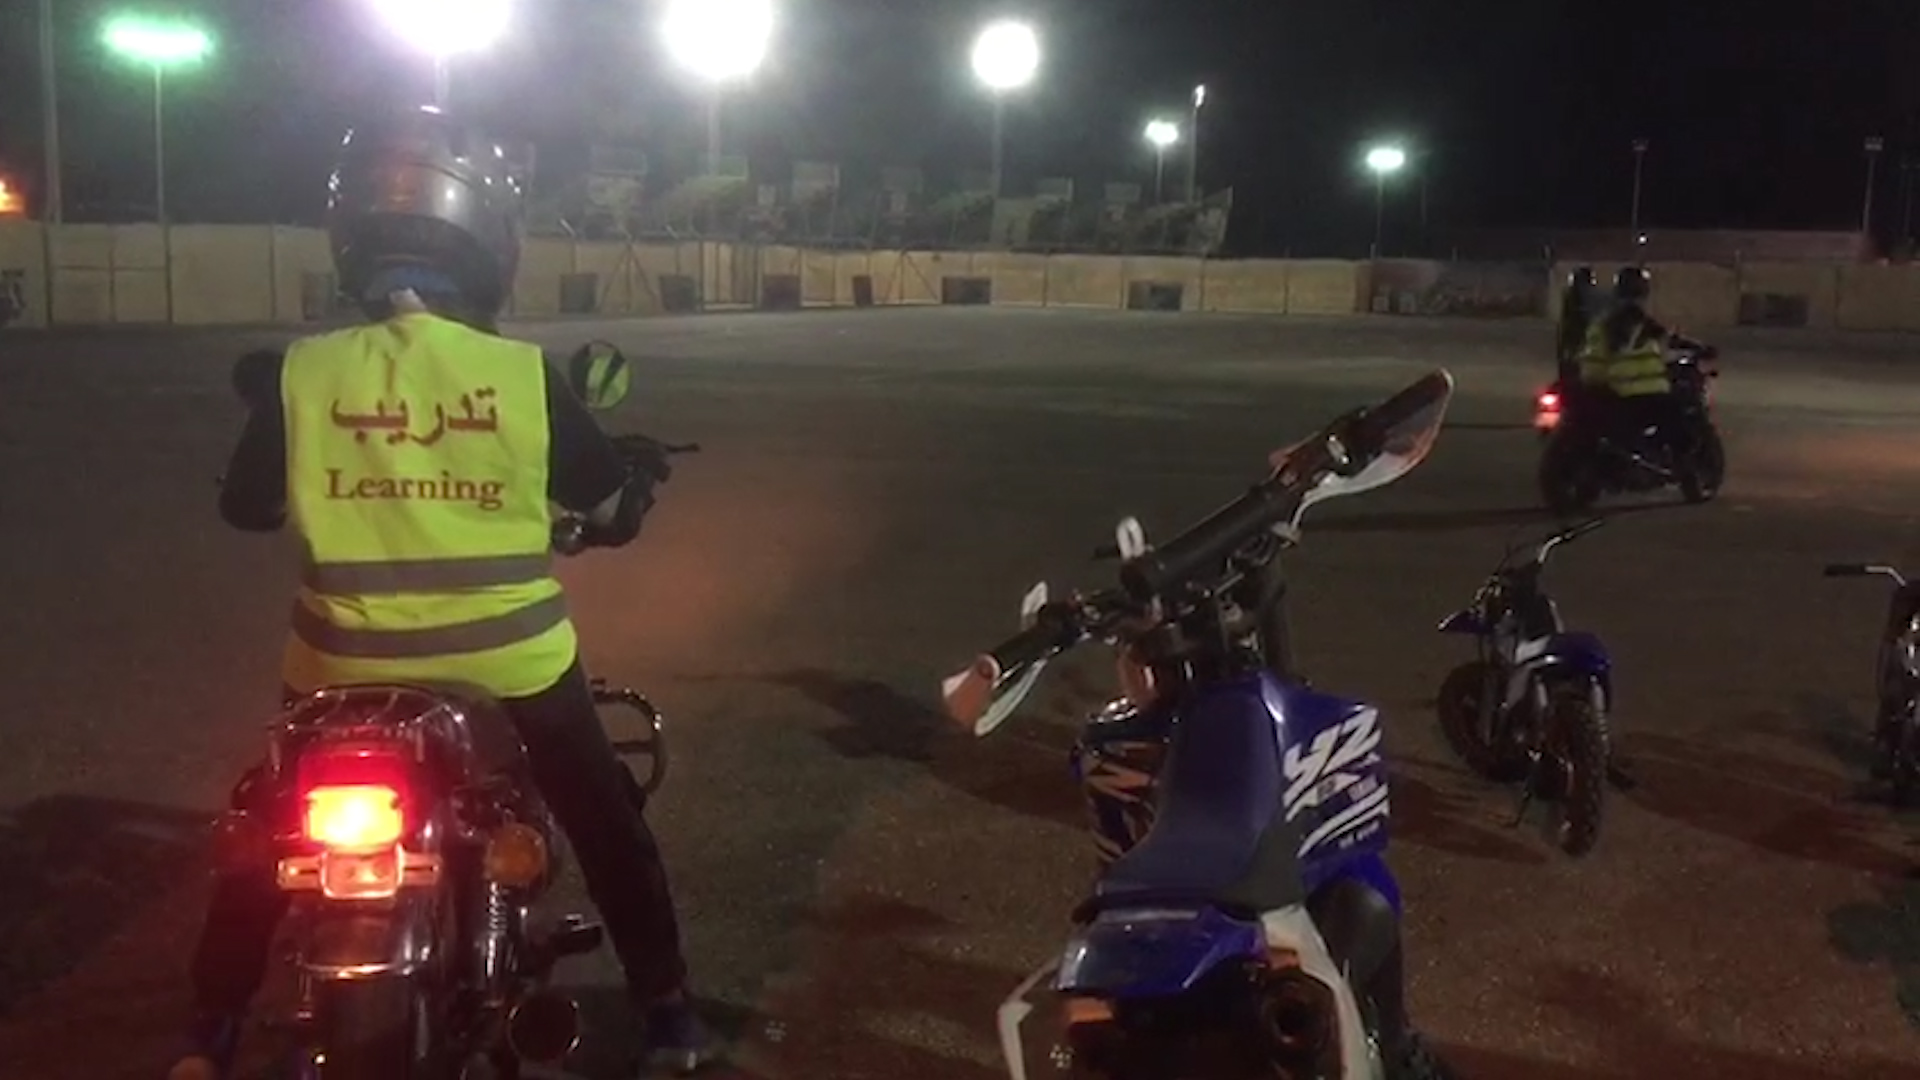 Saudi women on motorcycles signal new road ahead for the kingdom